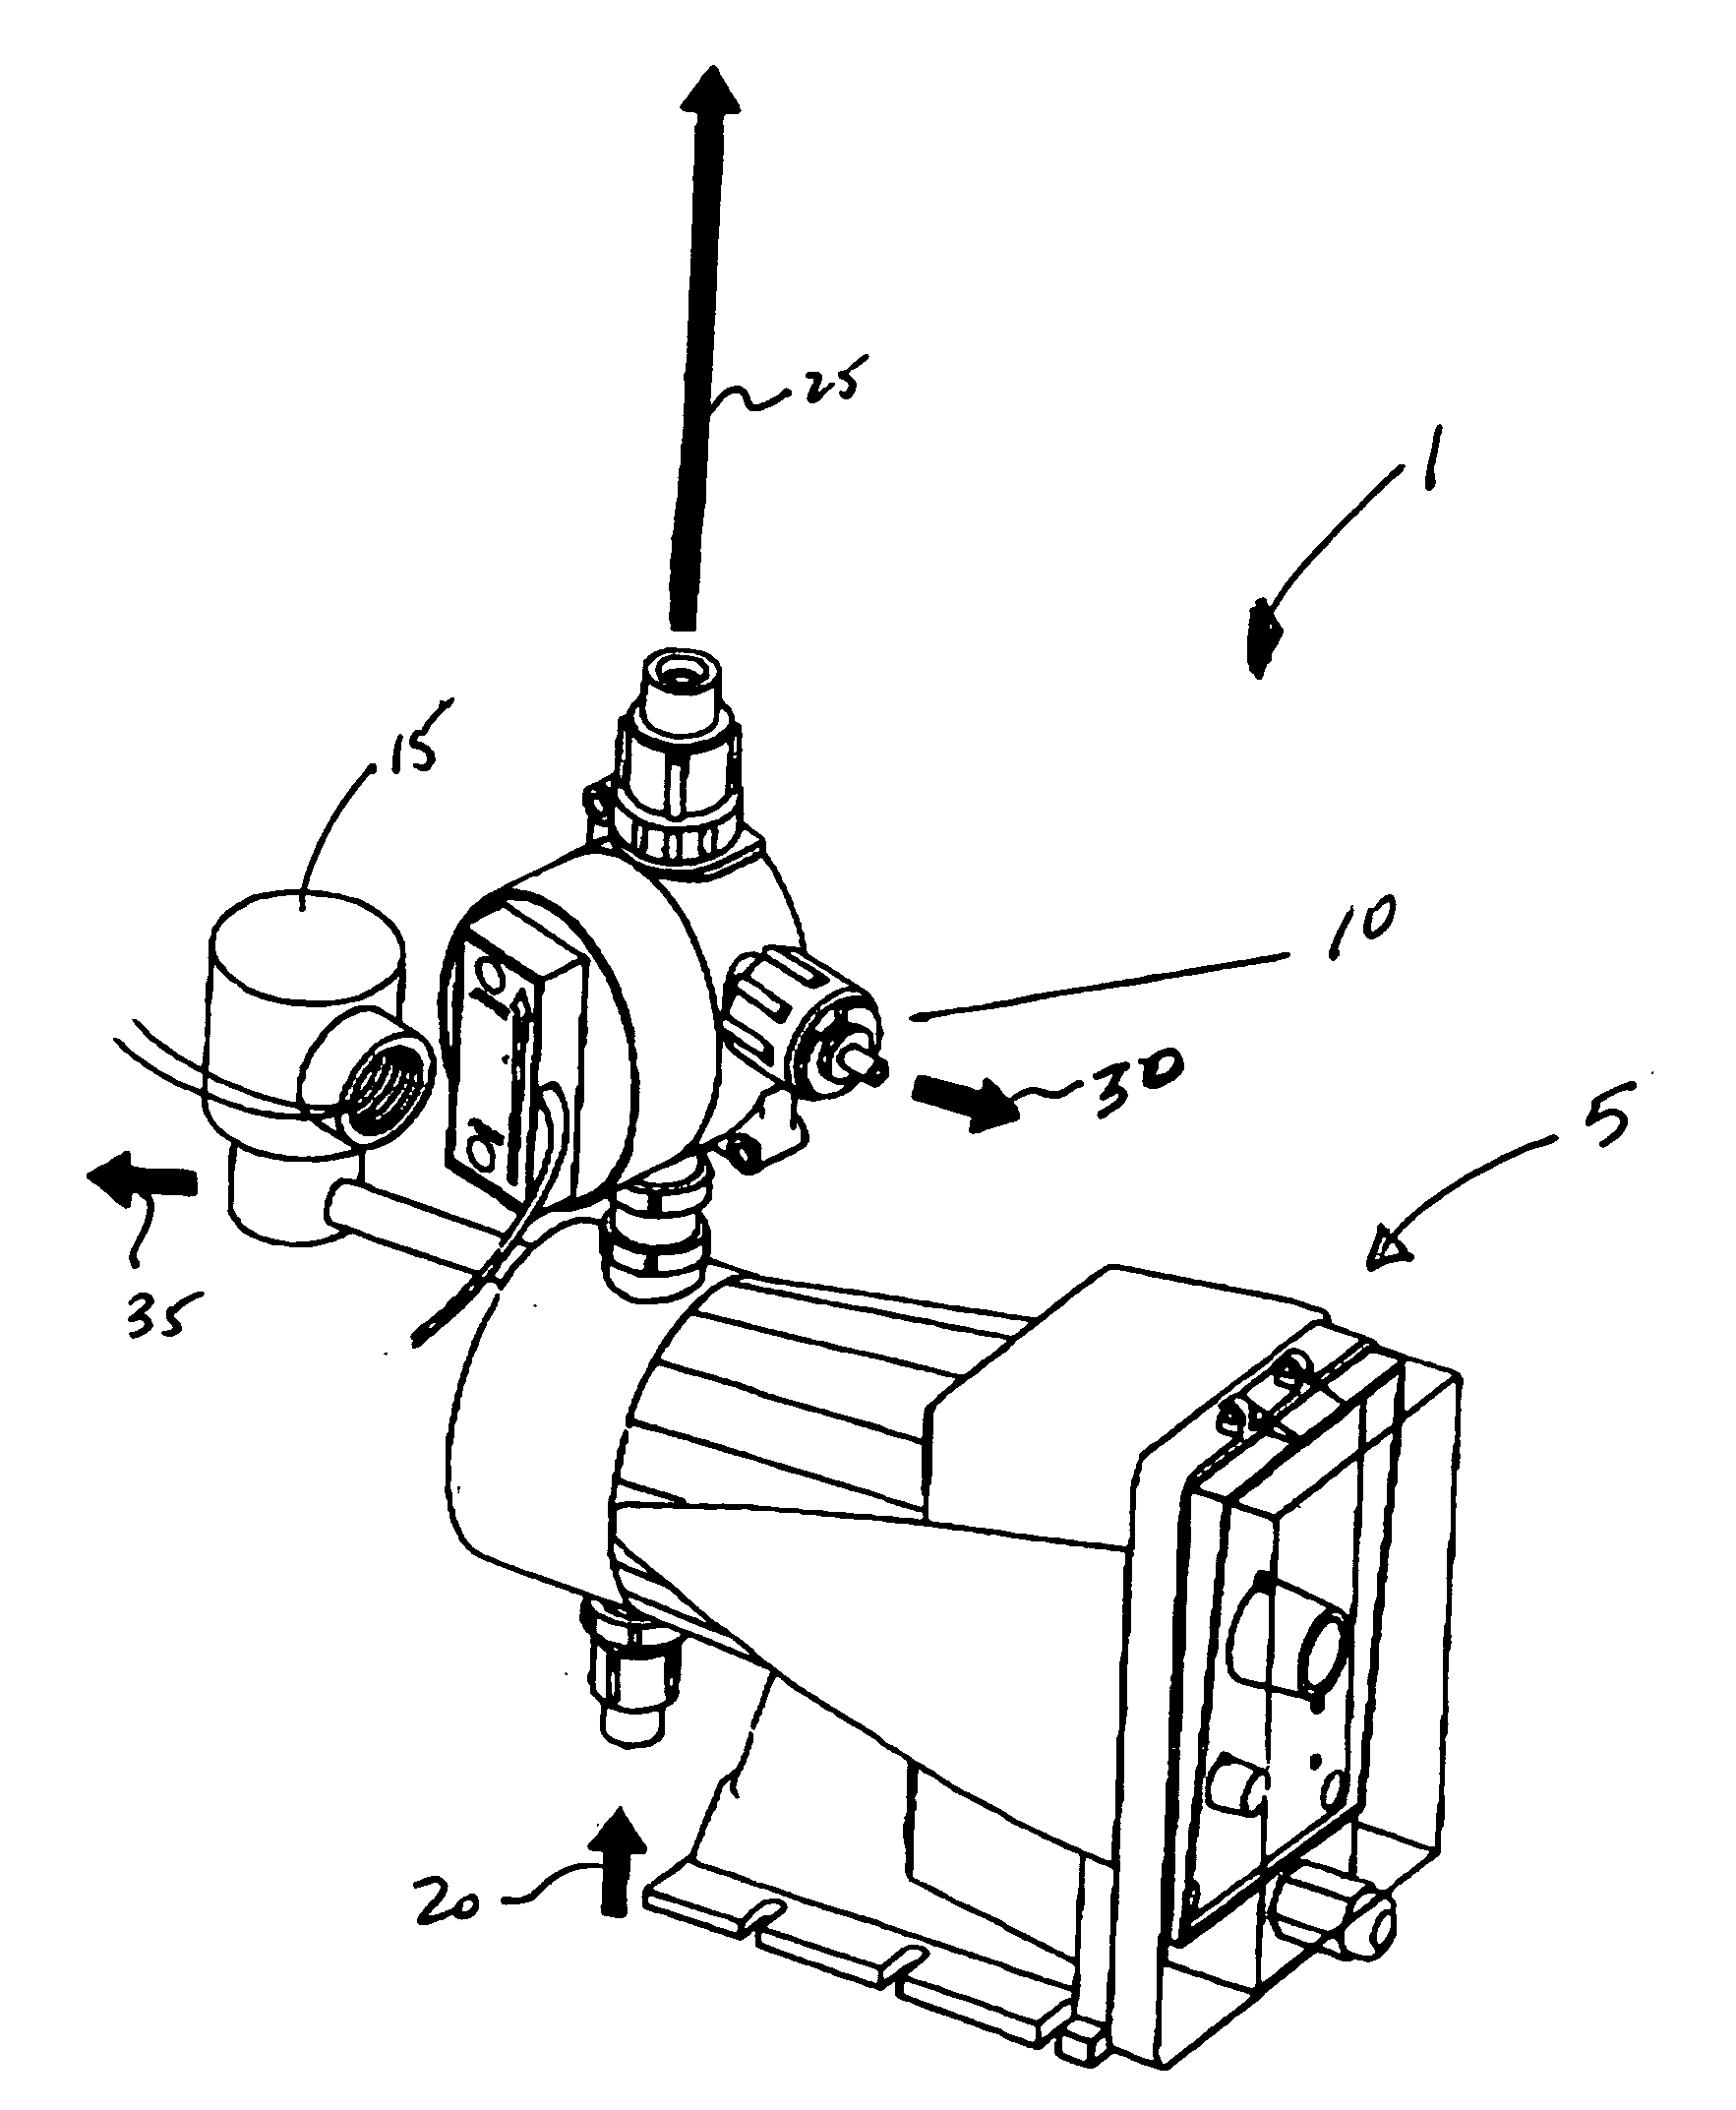 patent us20090016901 - self-priming electronic metering pump and priming methodology